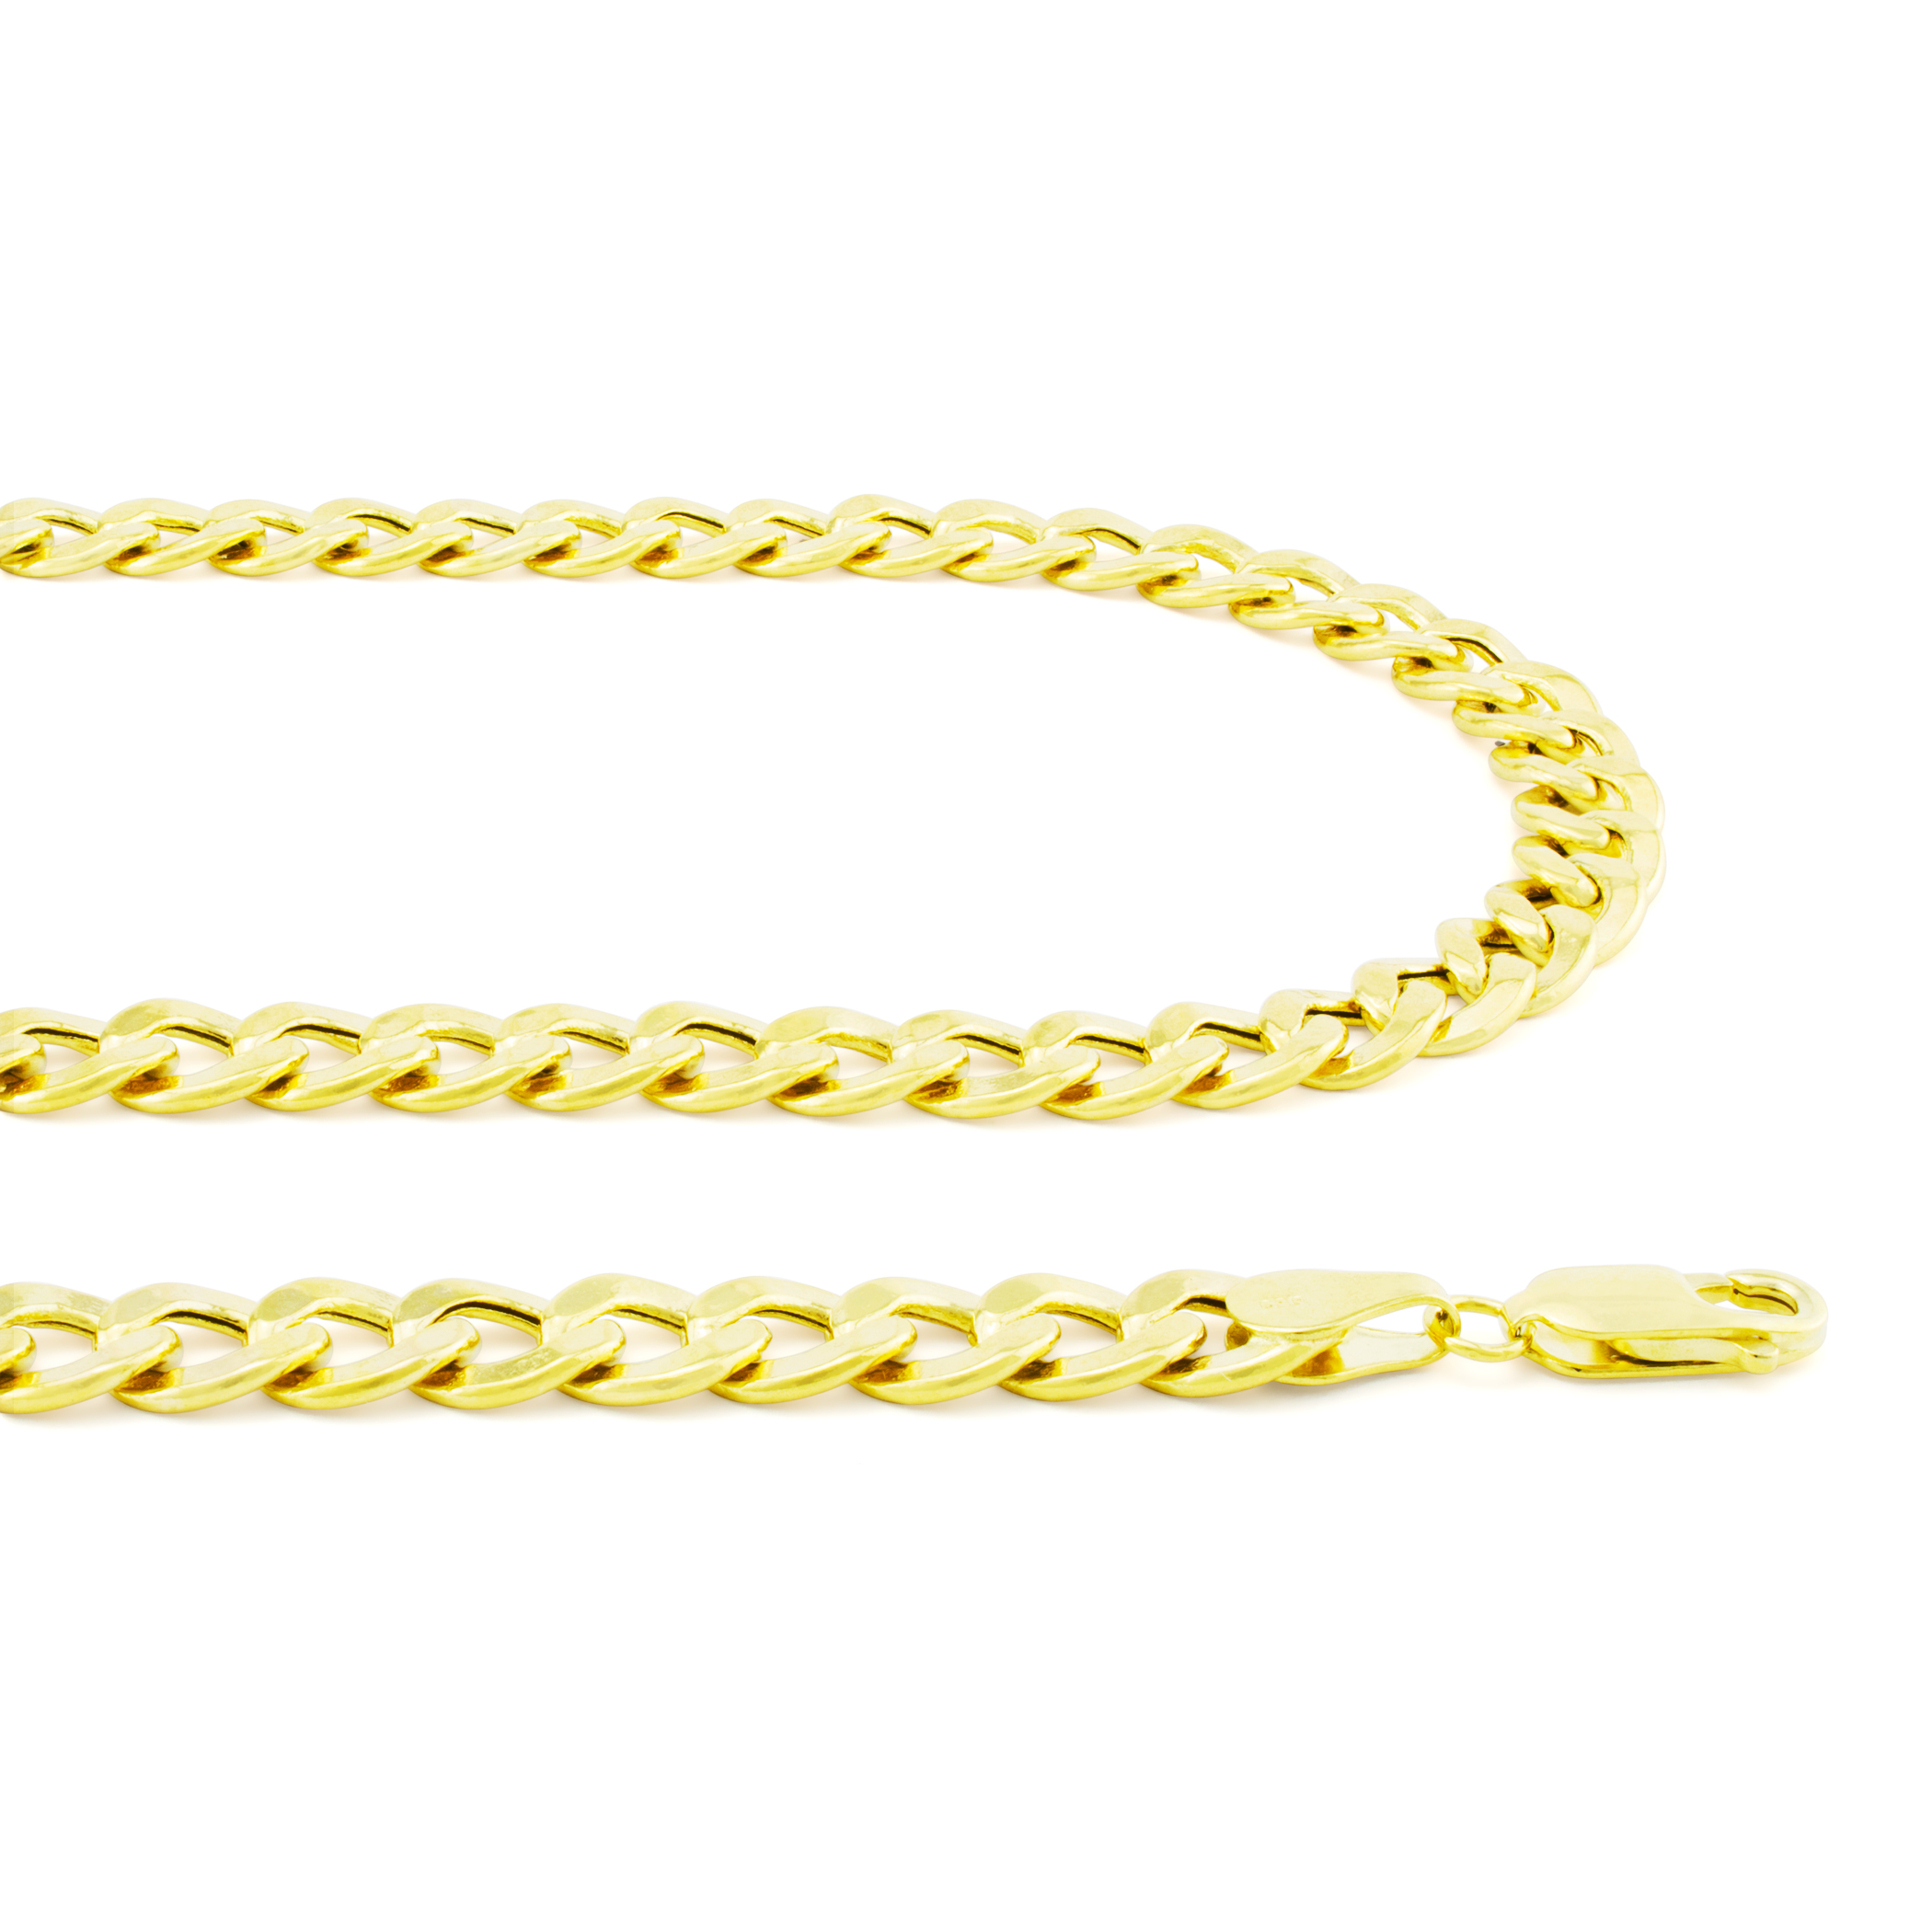 Real-10K-Yellow-Gold-6-5mm-Cuban-Curb-Chain-Link-Bracelet-Lobster-Clasp-7-034-8-034-9-034 thumbnail 20